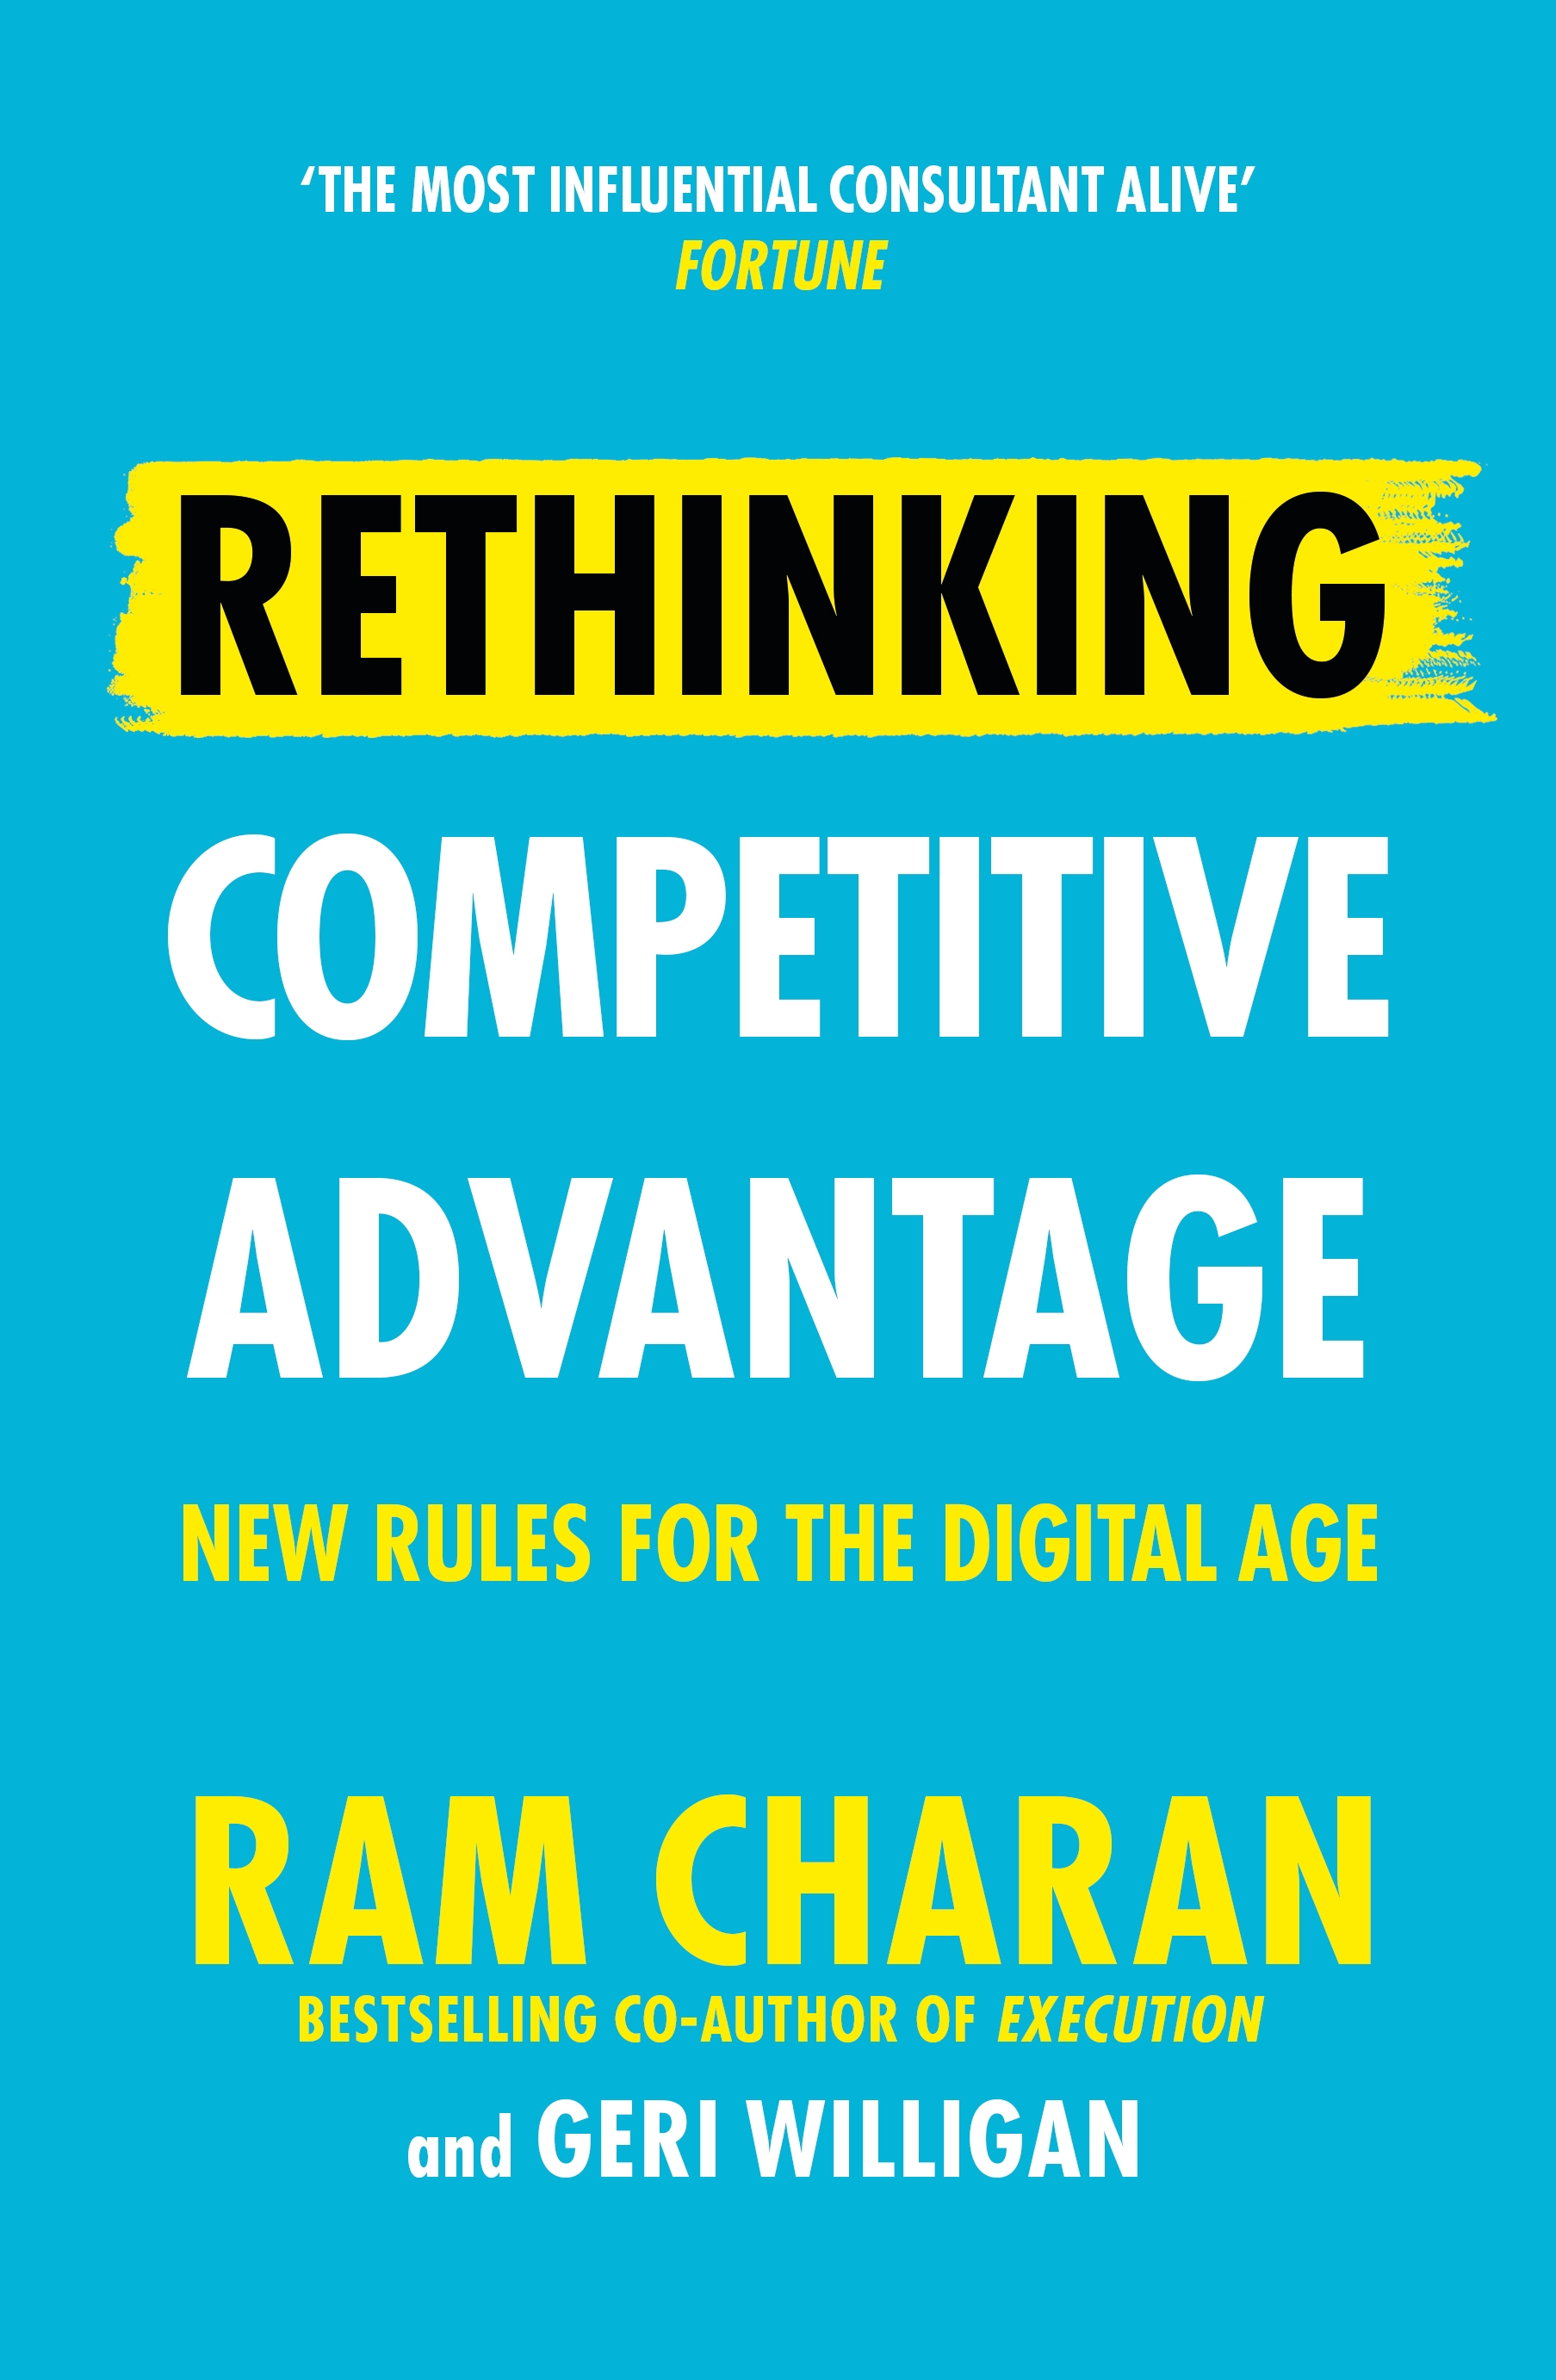 Rethinking competitive advantage